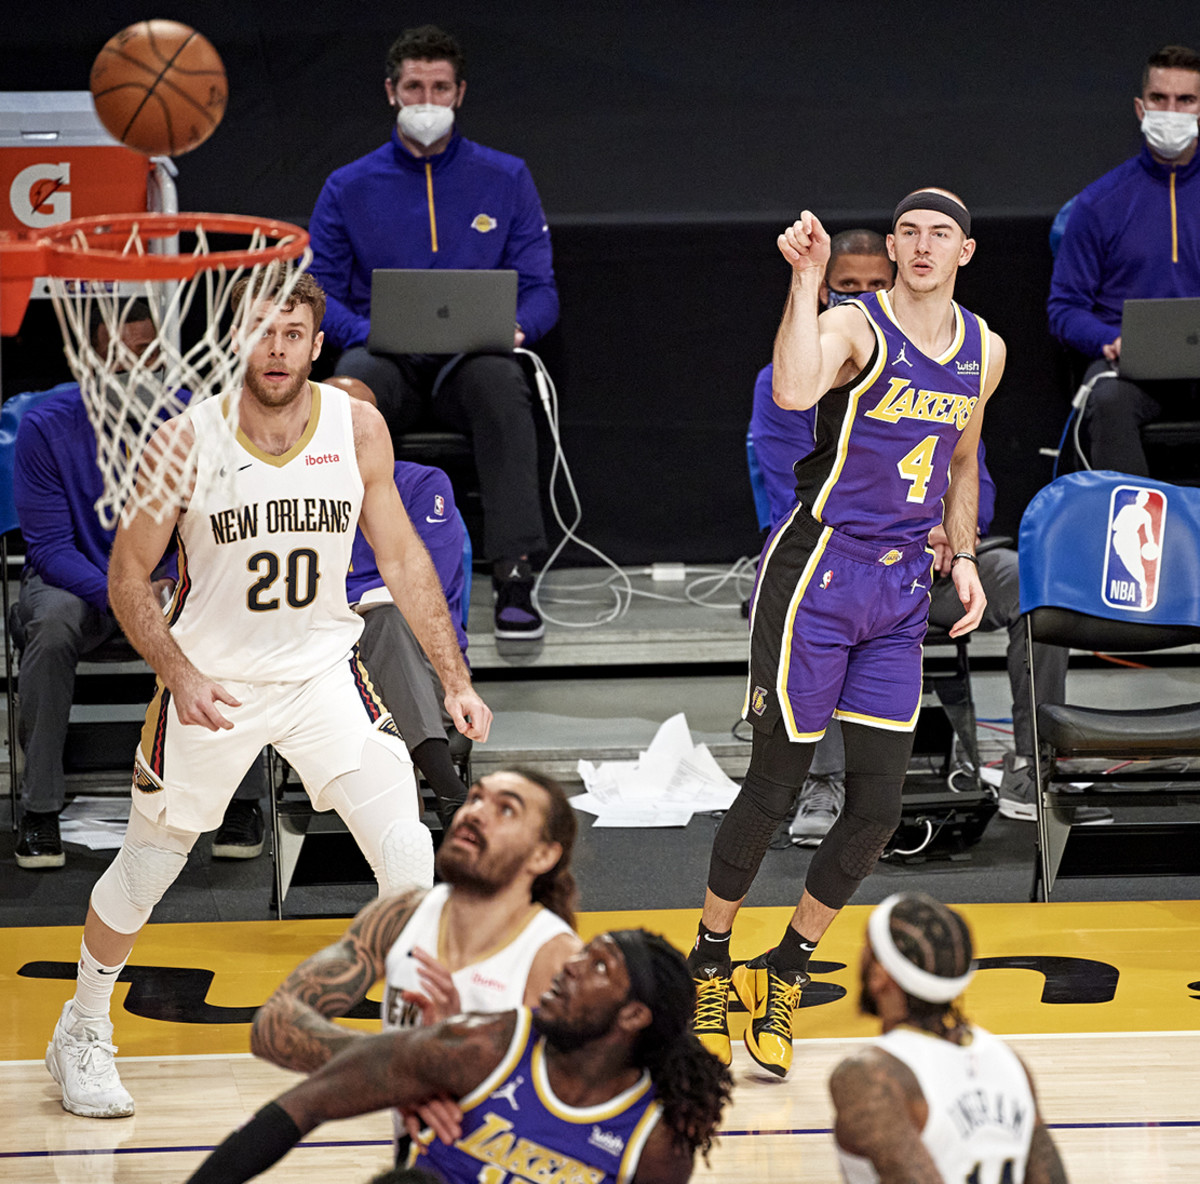 pace setter With surprising frequency, as Caruso goes, so go the Lakers: In January he was +28 in 18 minutes against the Pelicans in a 112–95 win.